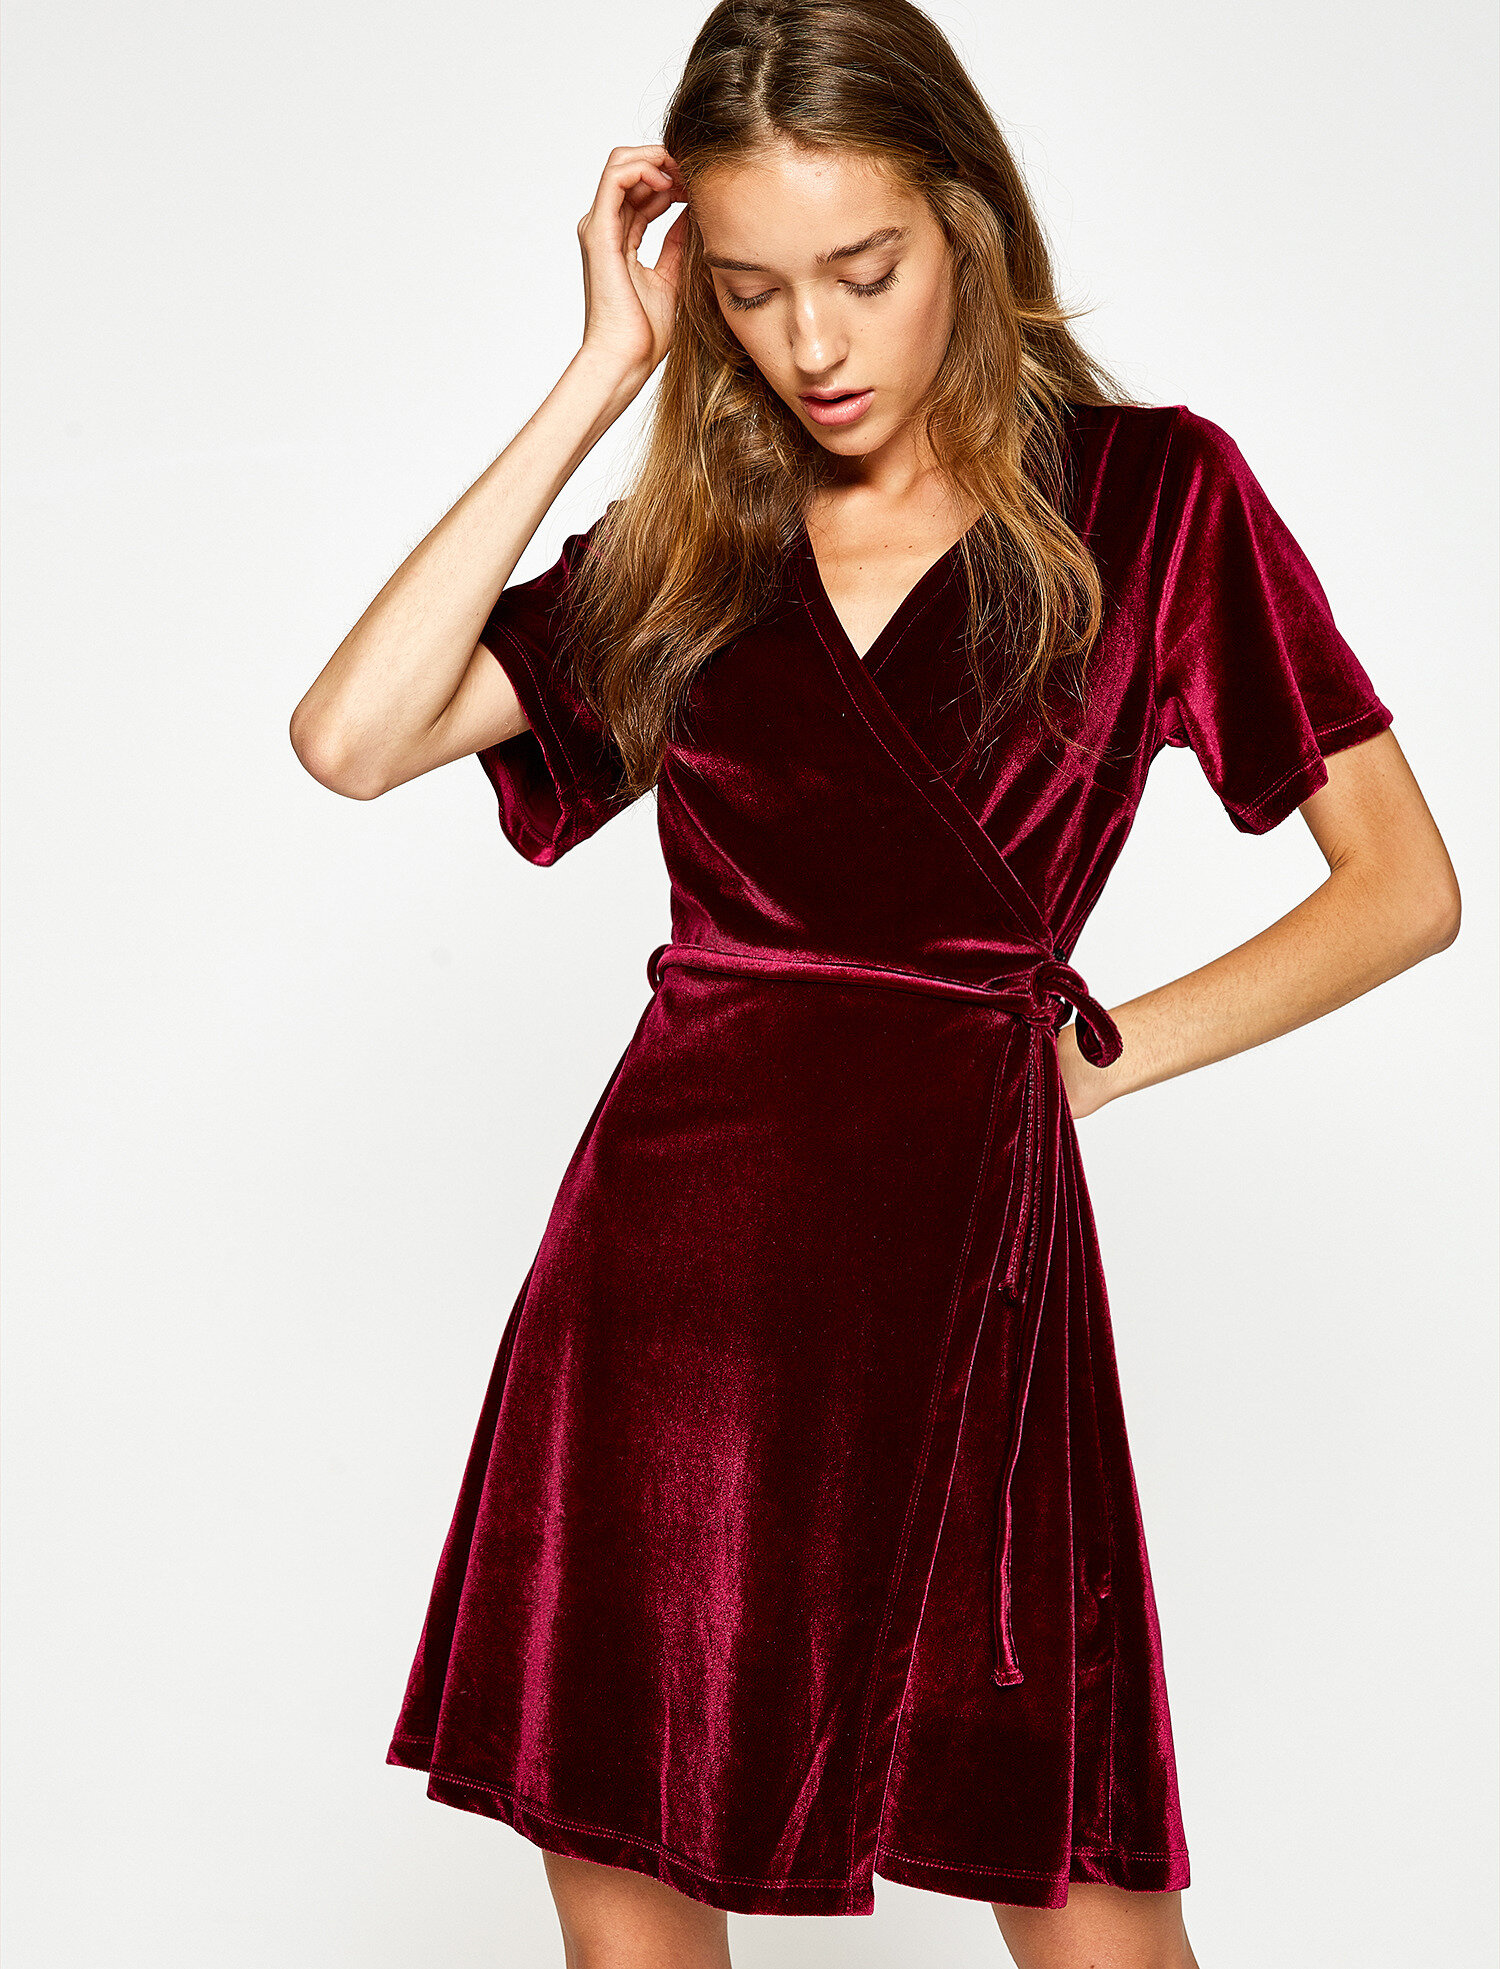 What Shoes To Wear With Velvet Swing Dress